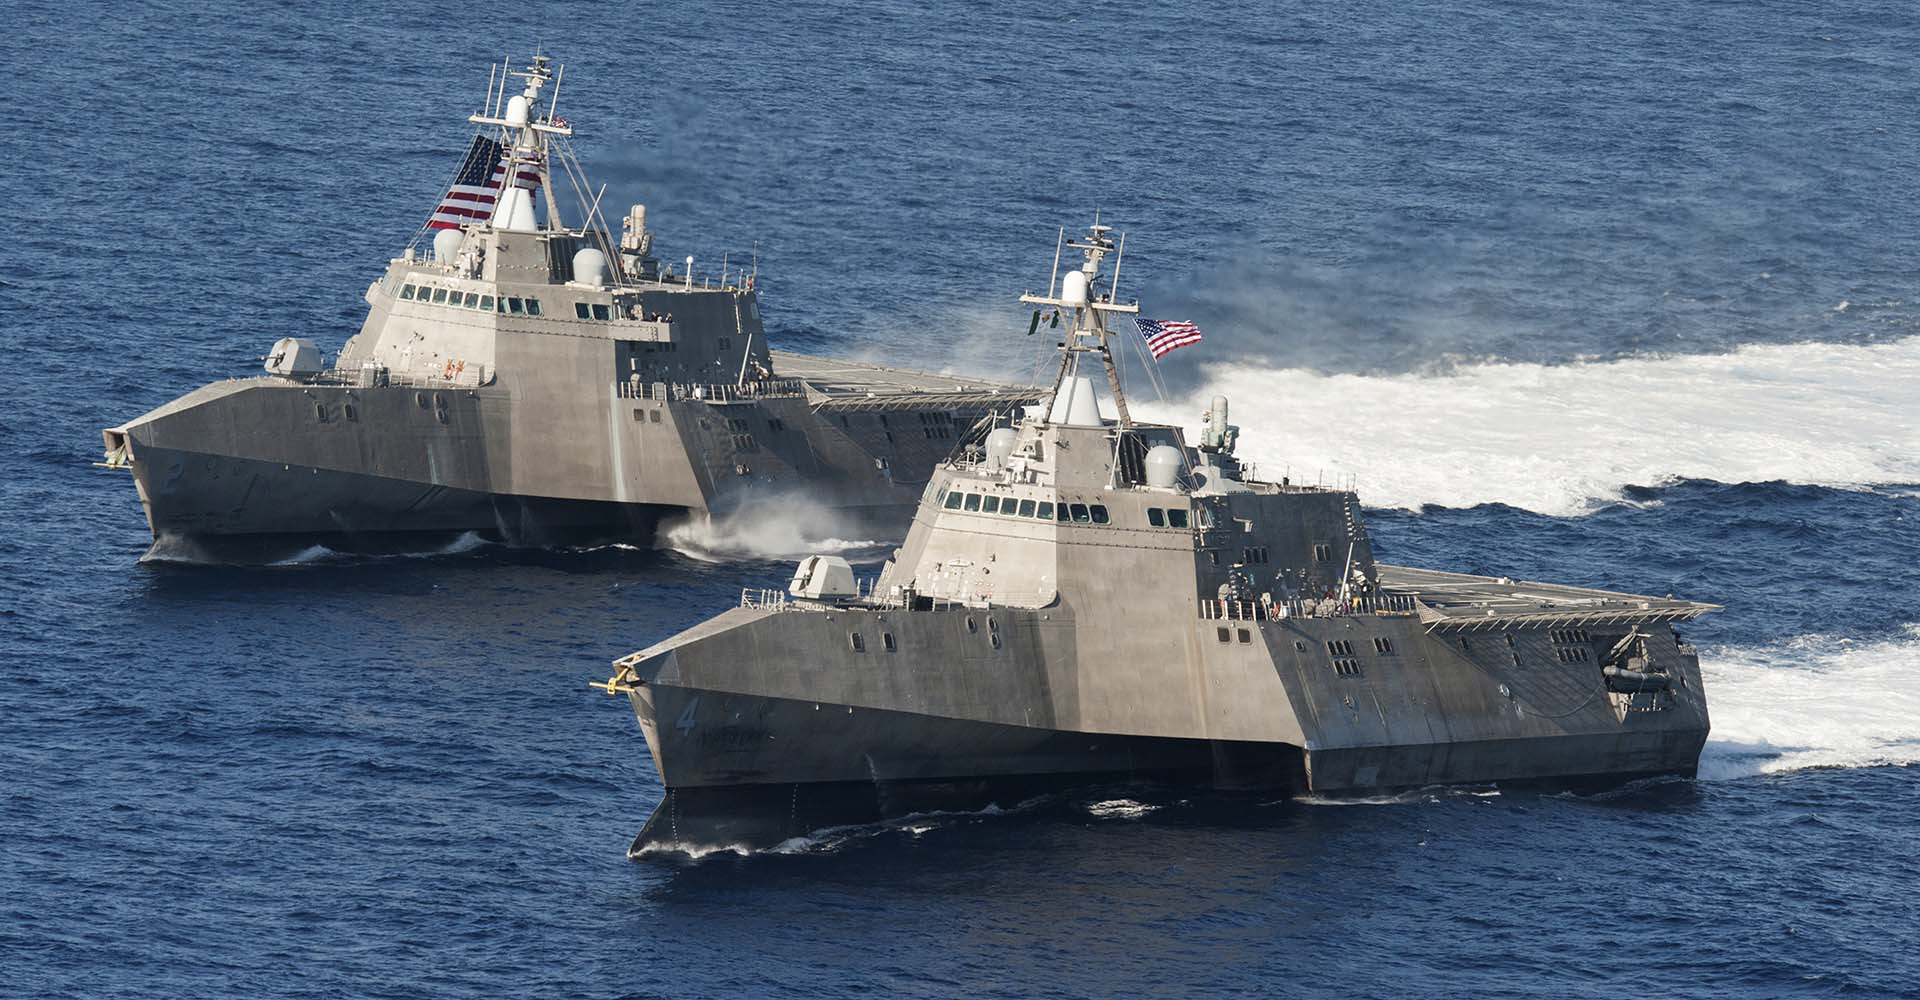 Littoral combat ships USS Independence (LCS 2), back, and USS Coronado (LCS 4) underway in the Pacific Ocean. Photo credit: U.S. Navy photo by Chief Mass Communication Specialist Keith DeVinney.